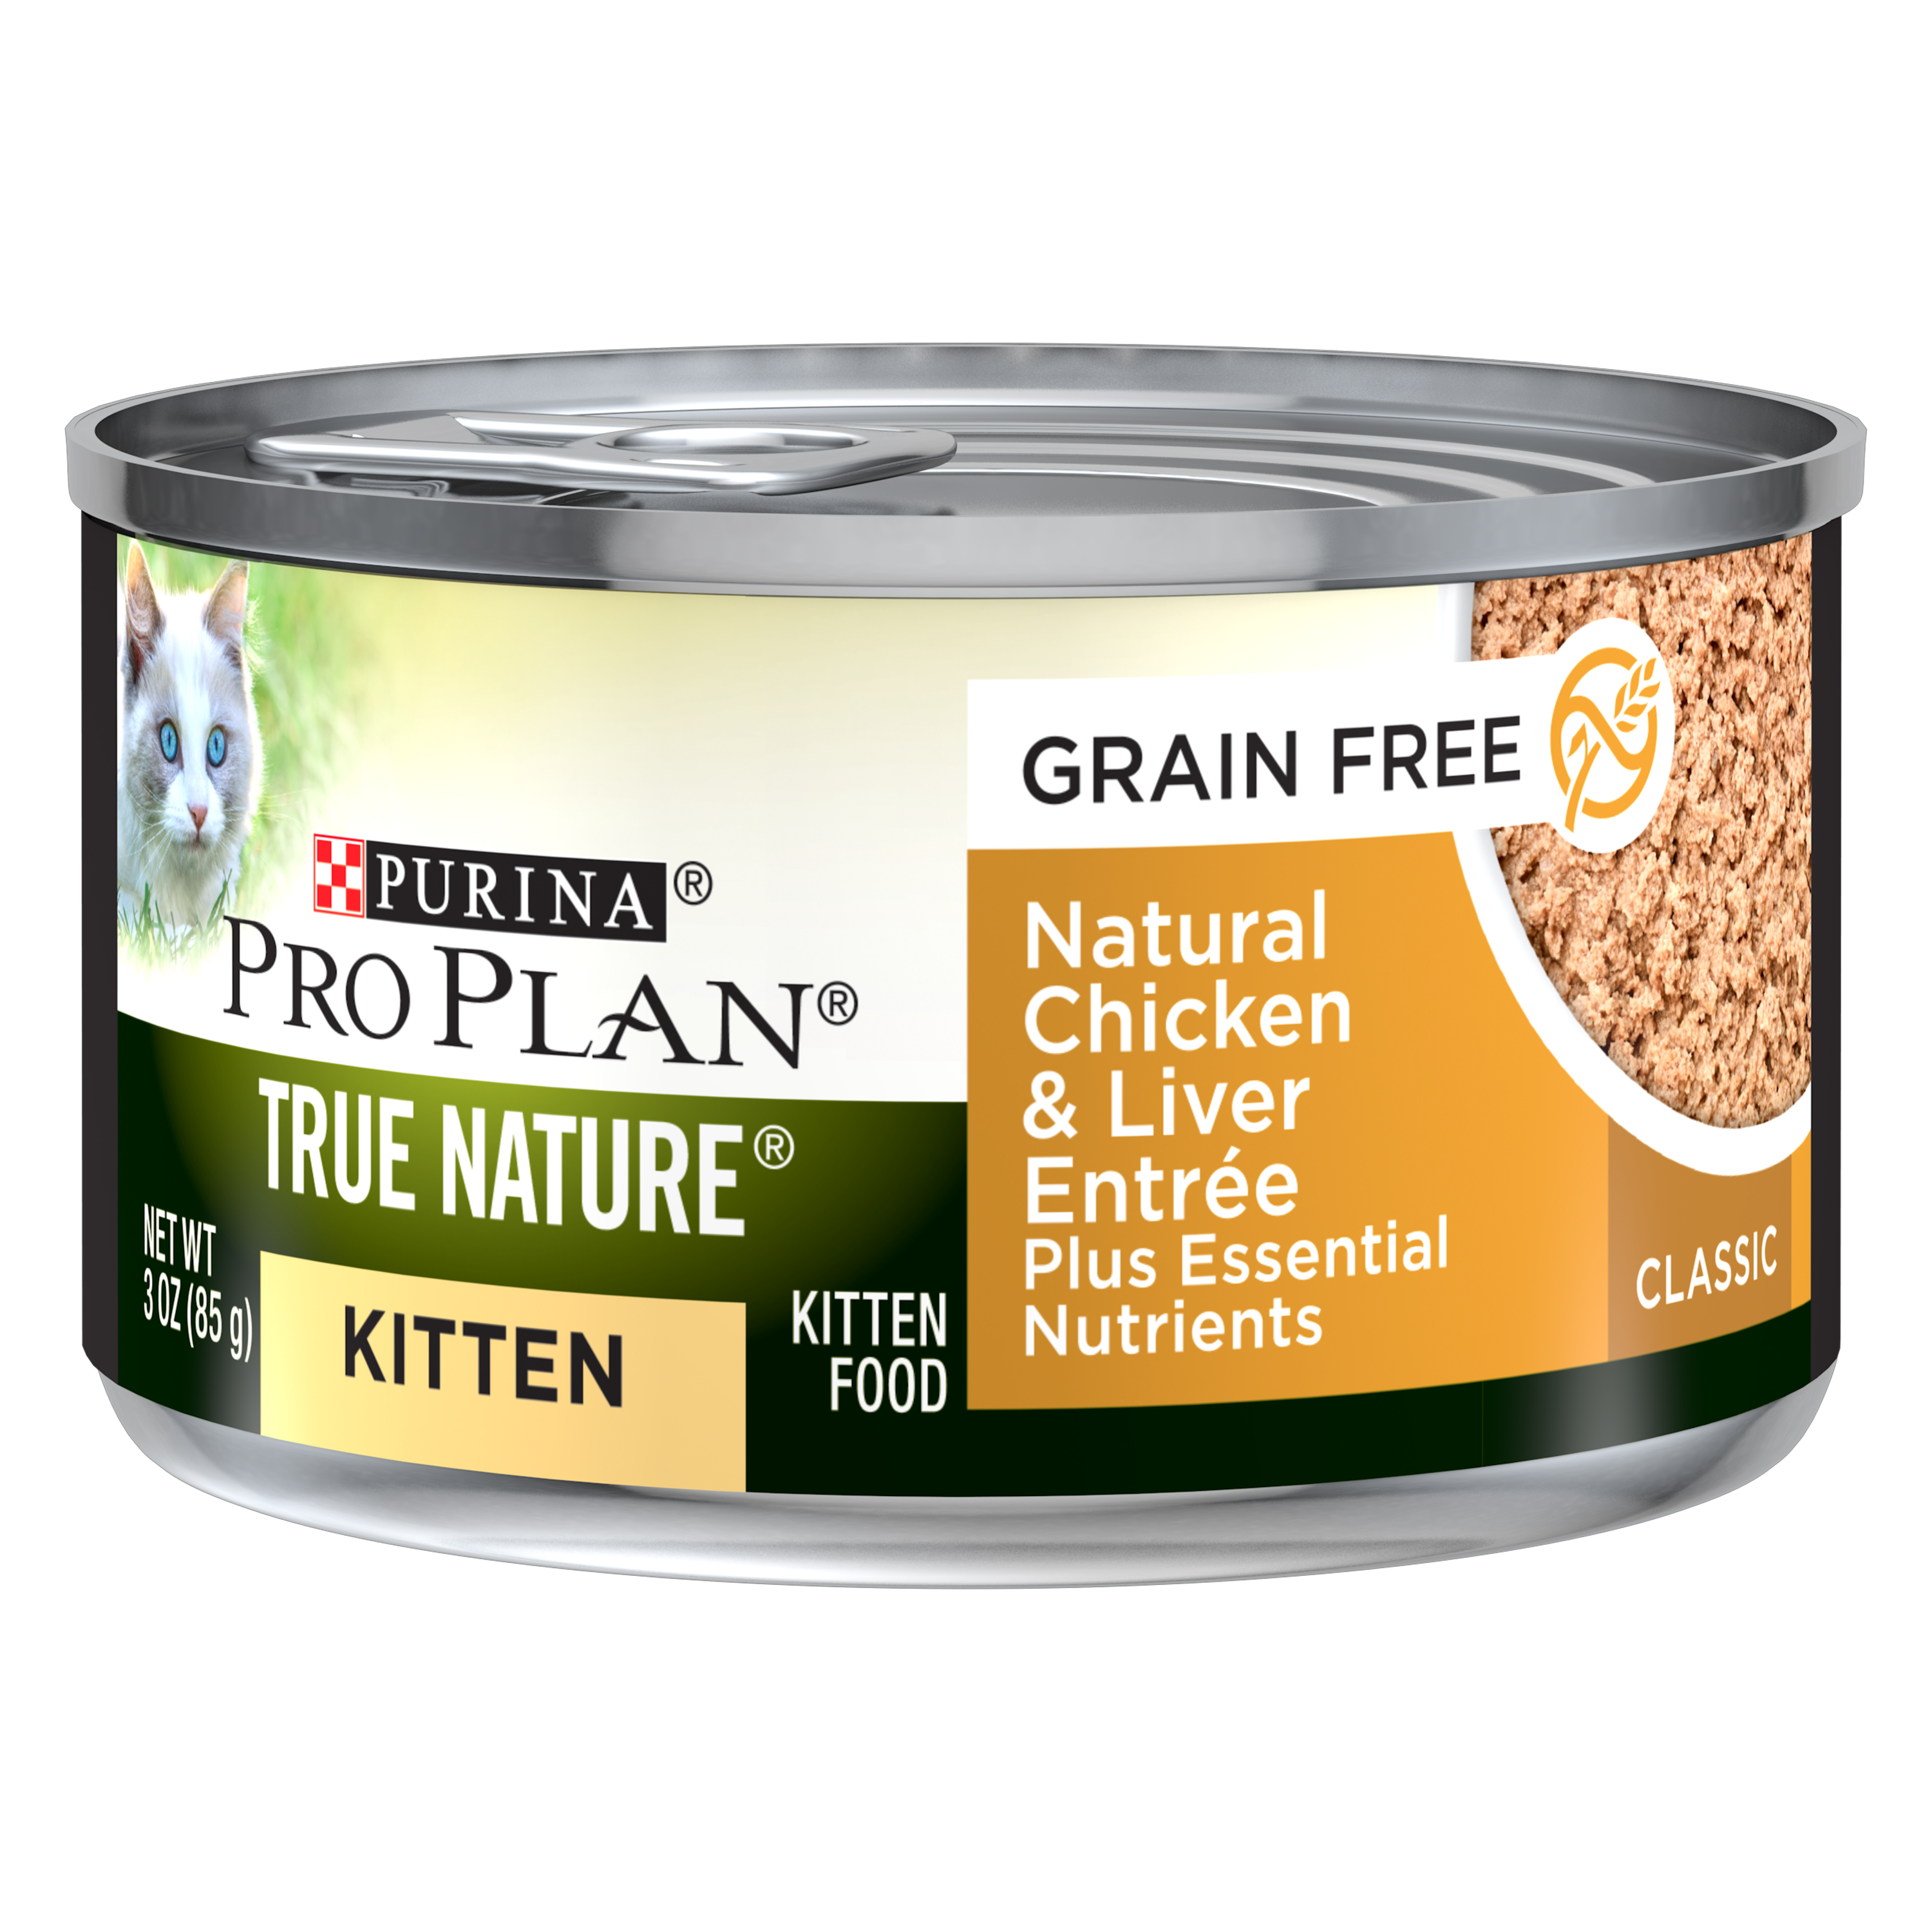 Purina Pro Plan TRUE NATURE Grain Free Natural Chicken & Liver Formula Plus Essential Nutrients Wet Kitten Food - (24) 3 oz. Pull-Top Can